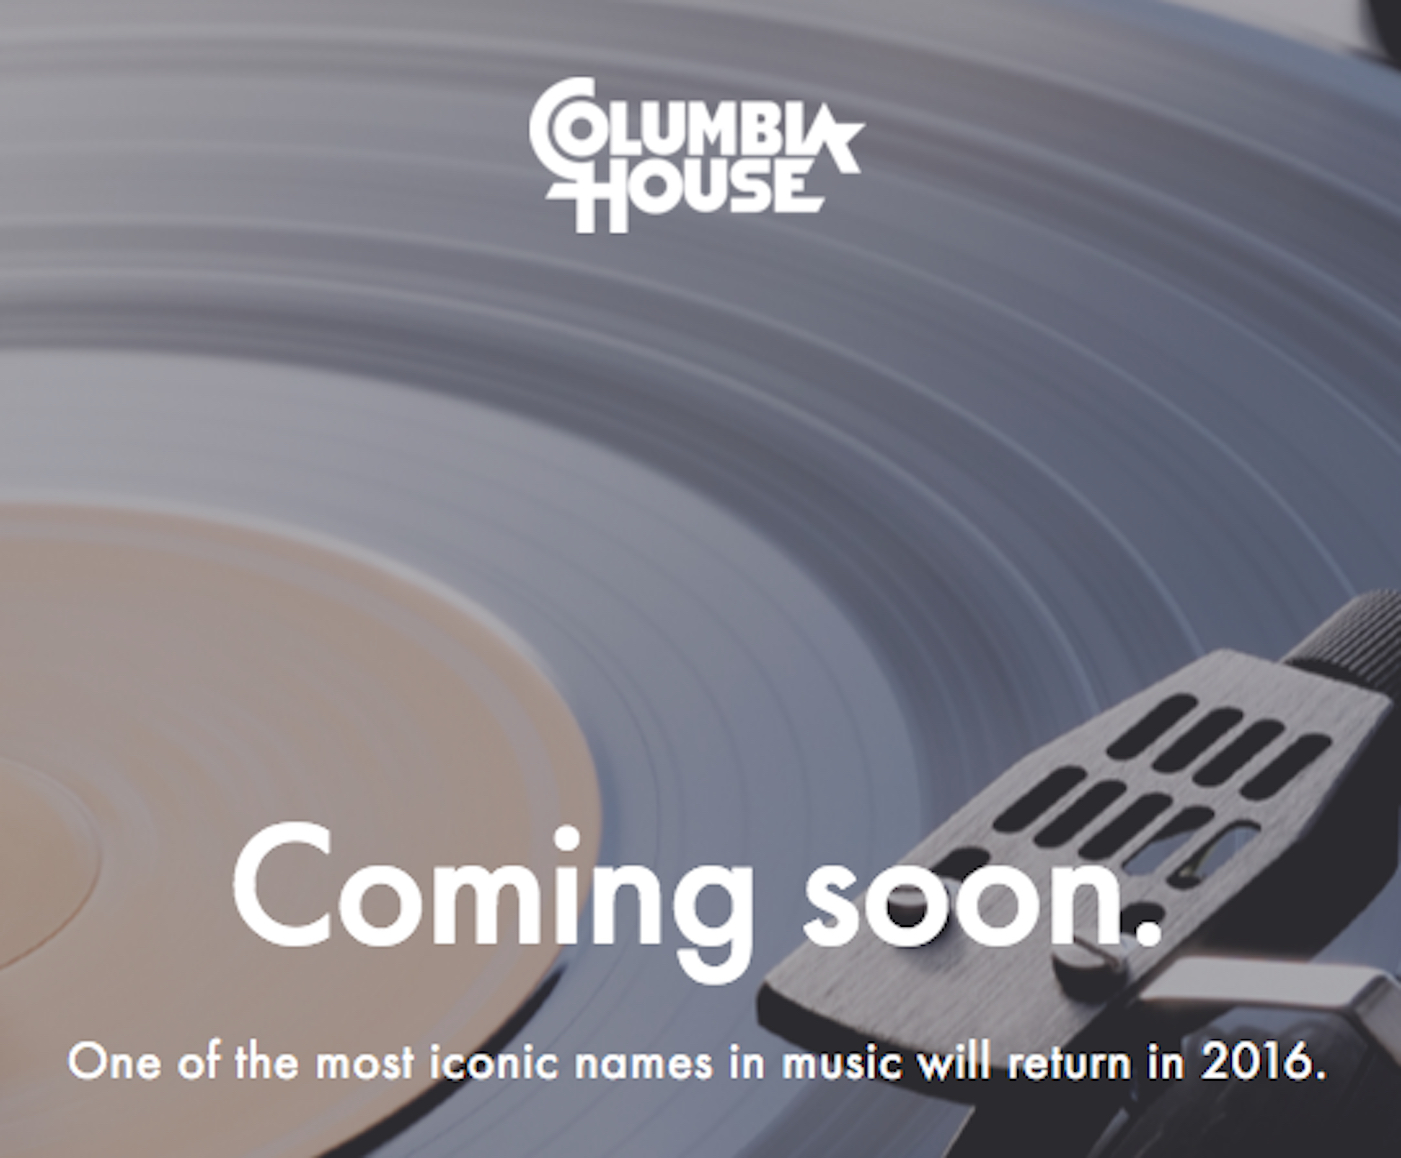 Columbia House to Relaunch as Vinyl Subscription Service in 2016